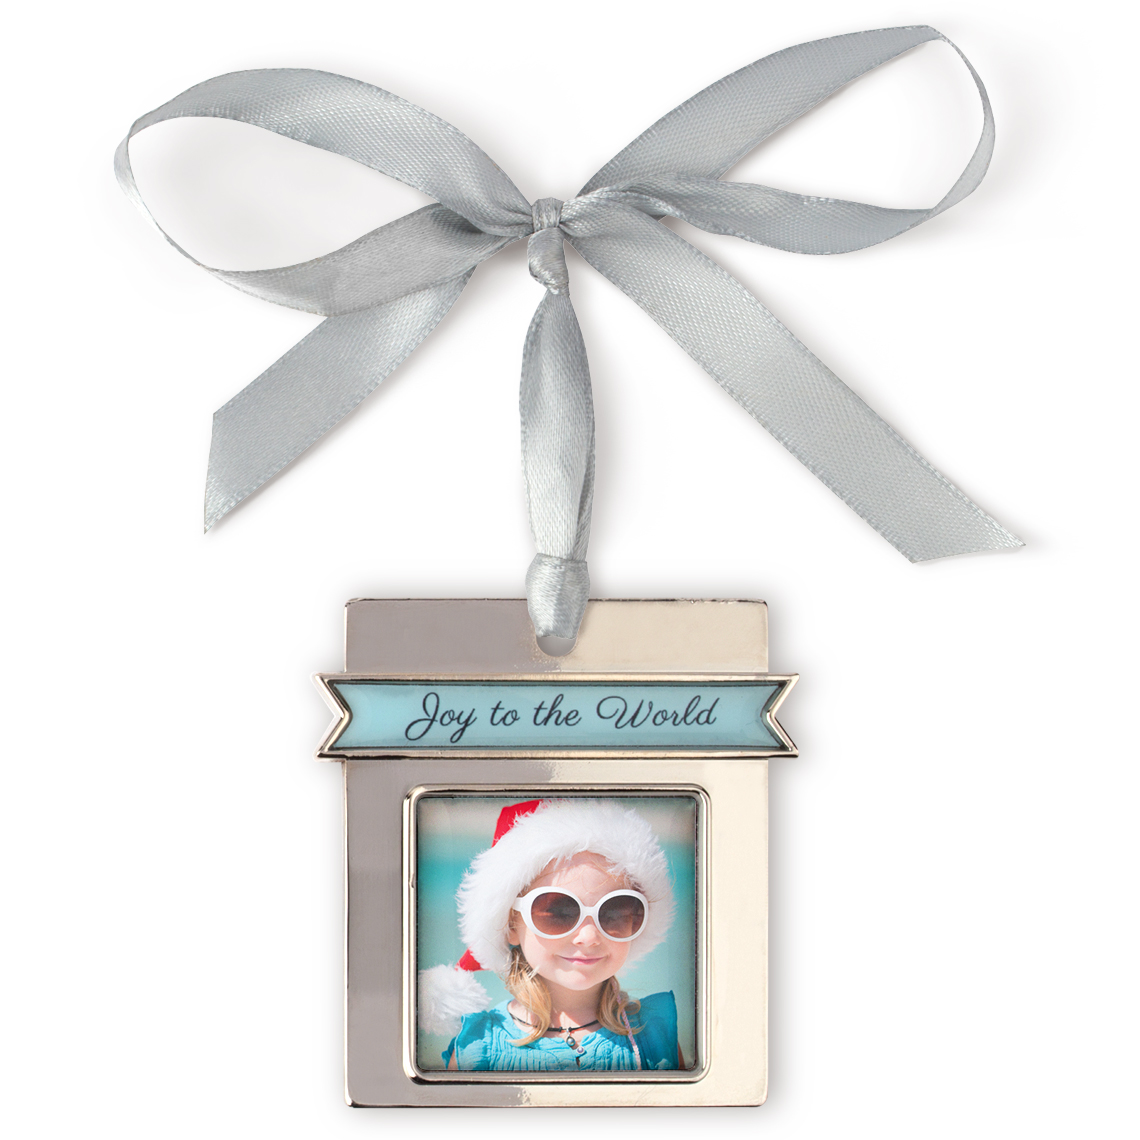 Joy to the World Photo Ornament | Christmas Ornaments and Decor ...